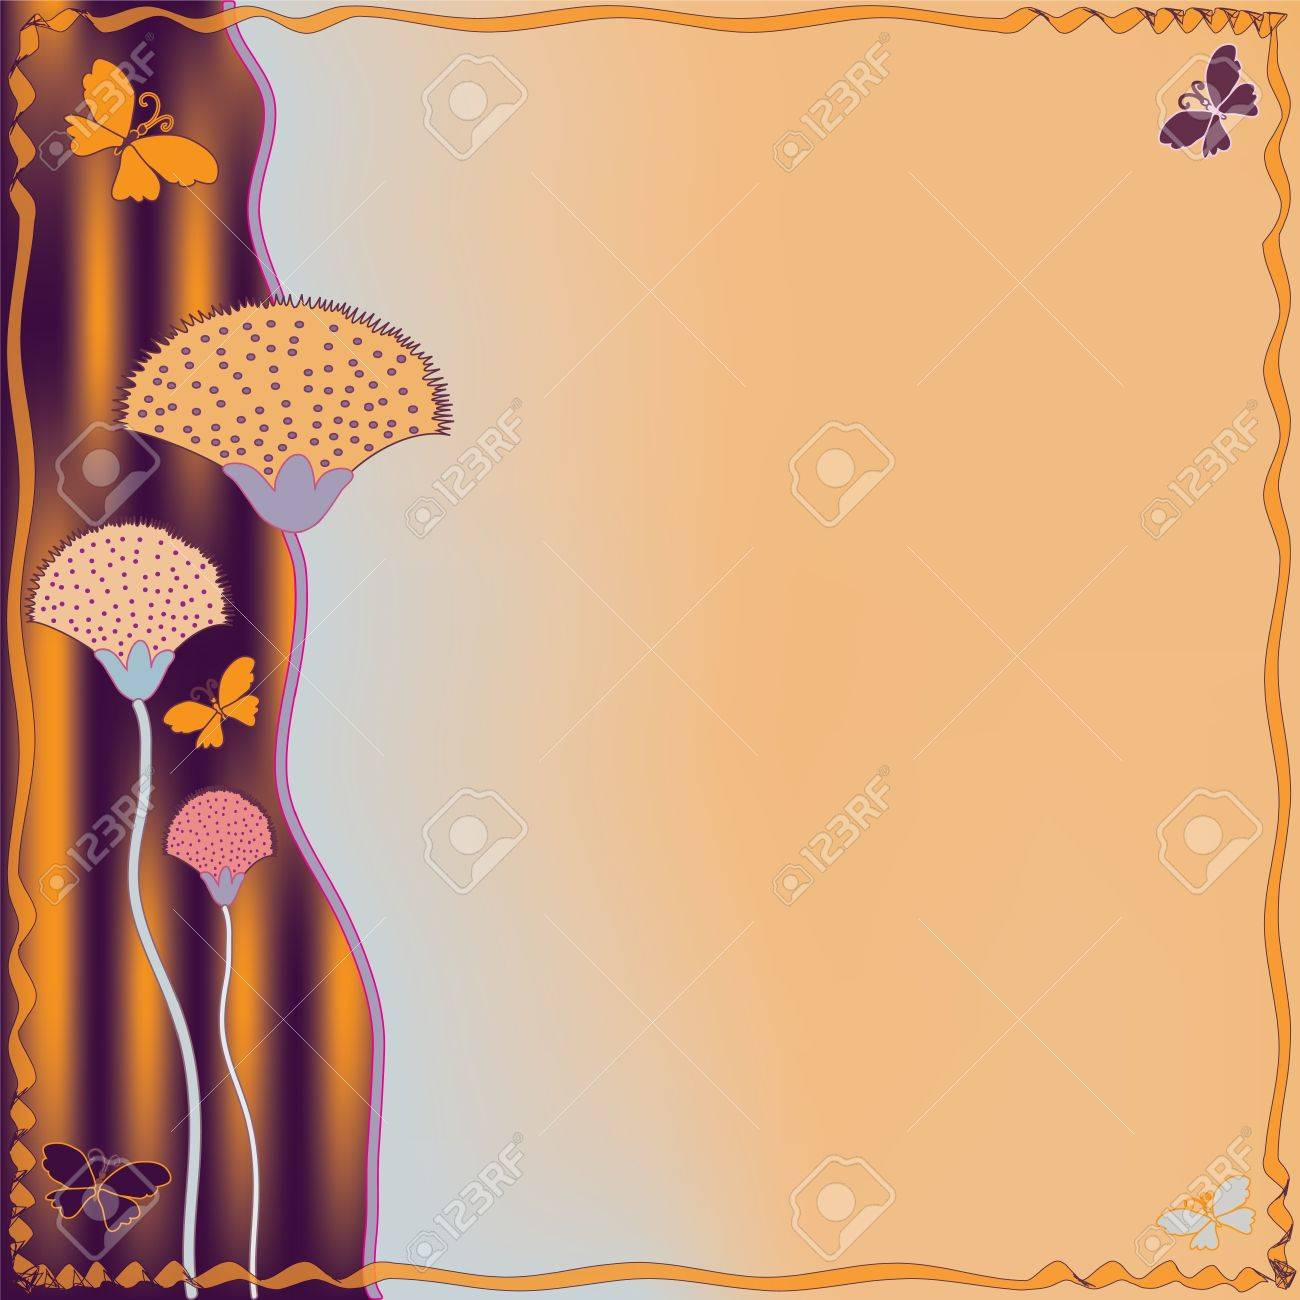 Invitation grunge striped card with abstract flowers and butterflies Stock Vector - 13439274